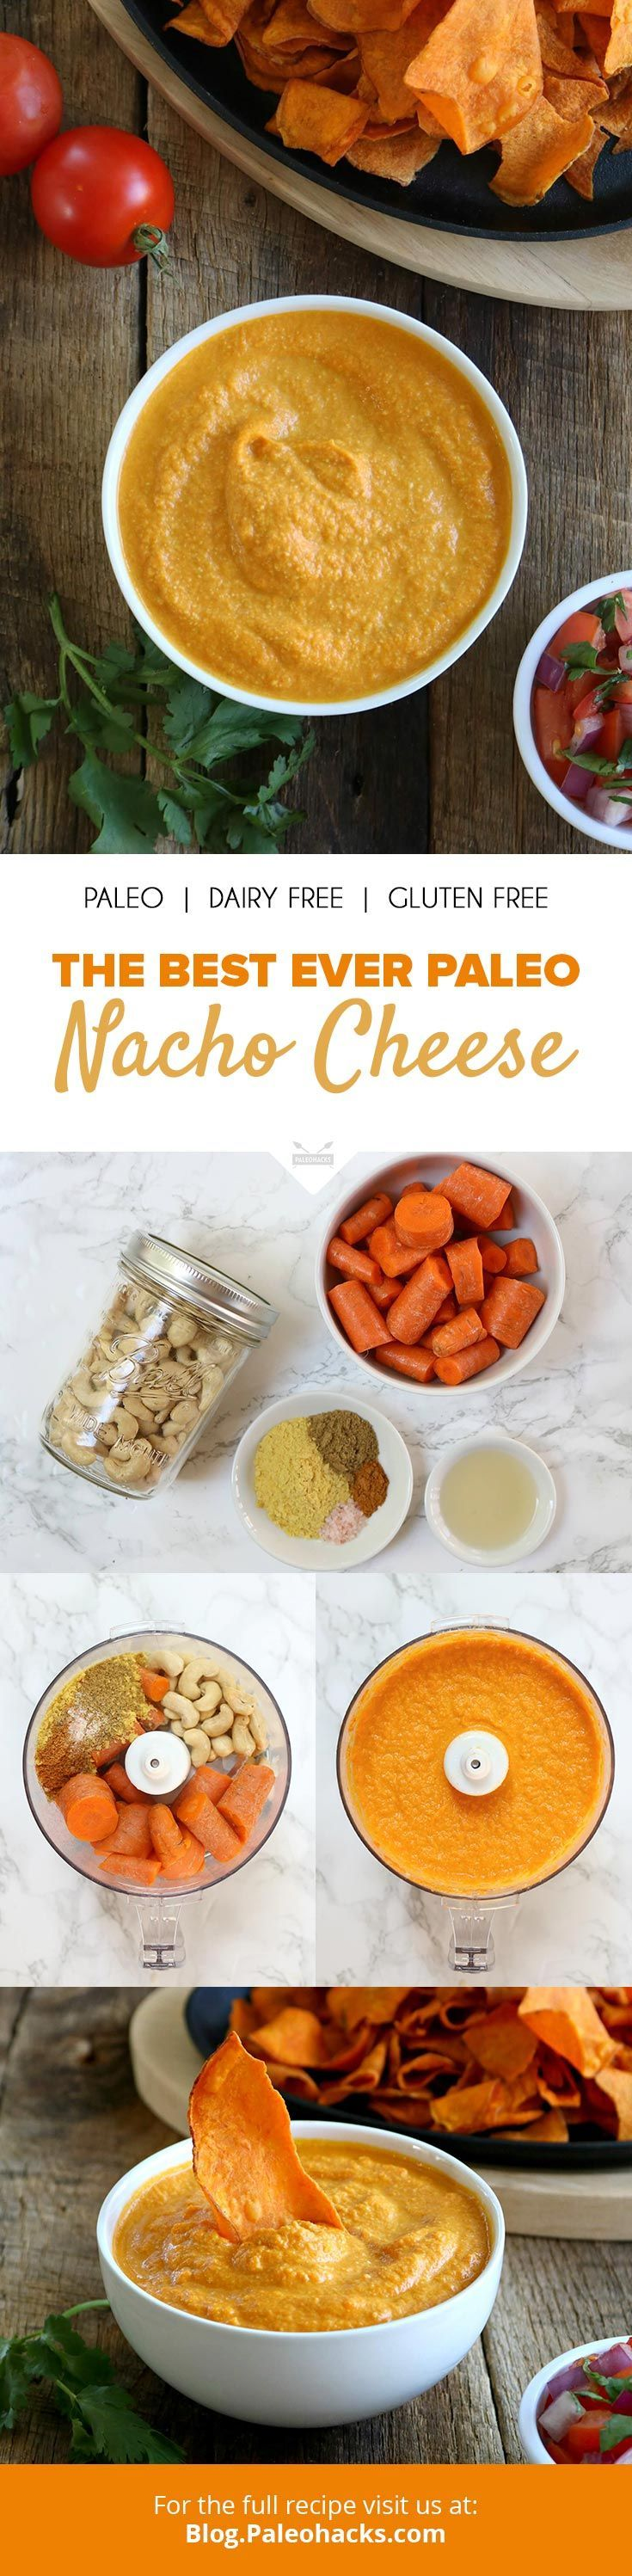 Drizzle this creamy nacho cheese sauce over everything from tacos to veggie chips! Get the full recipe here: http://paleo.co/paleonachocheese